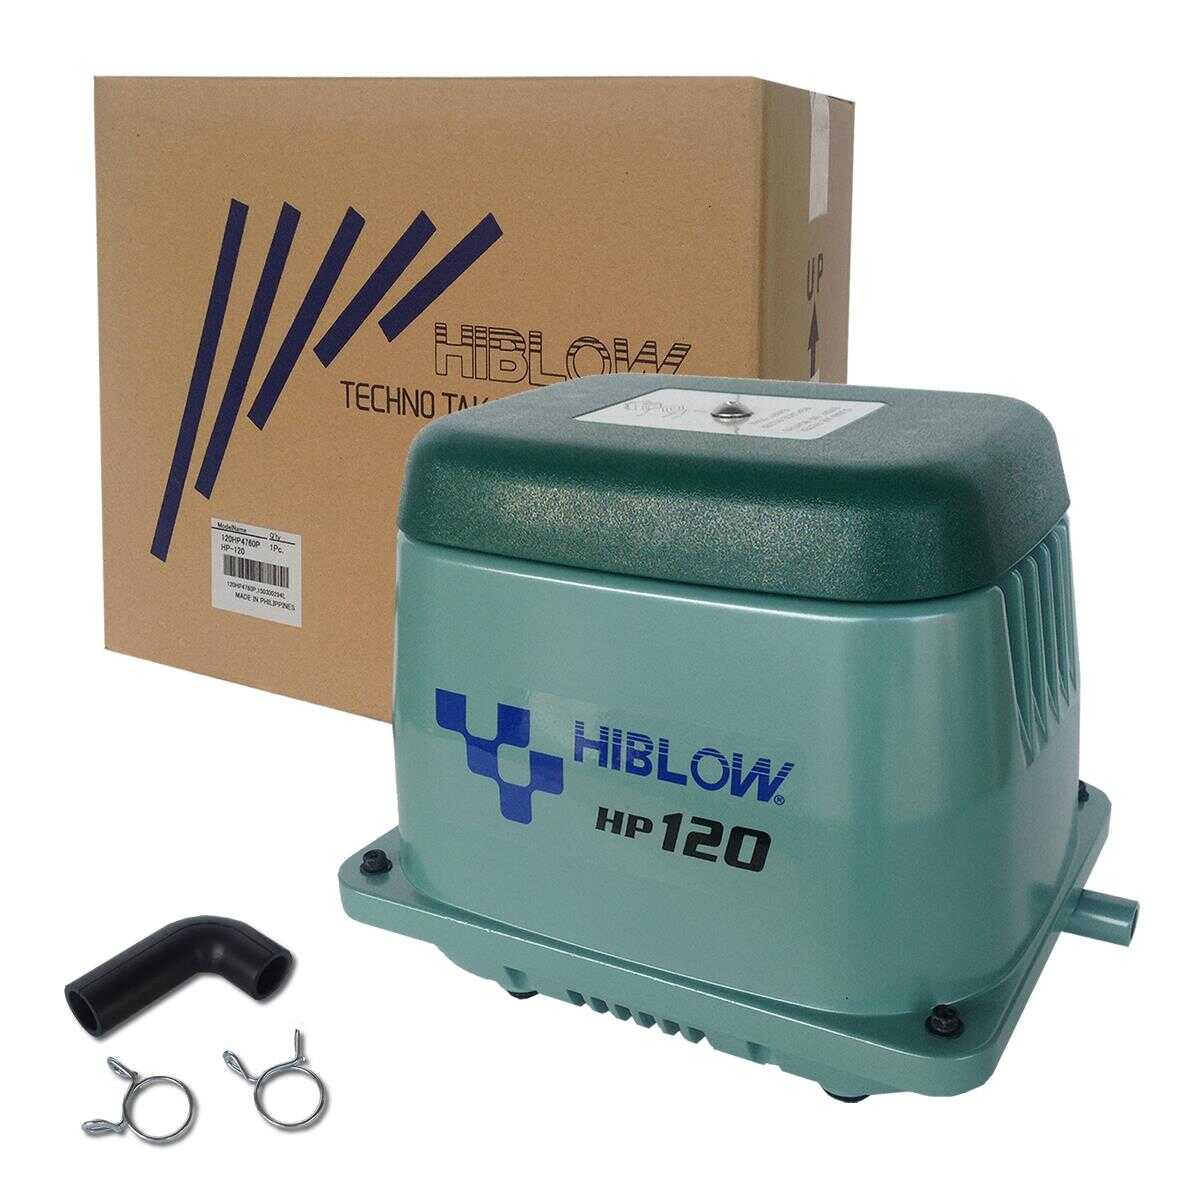 Hiblow HP 120 Orginal